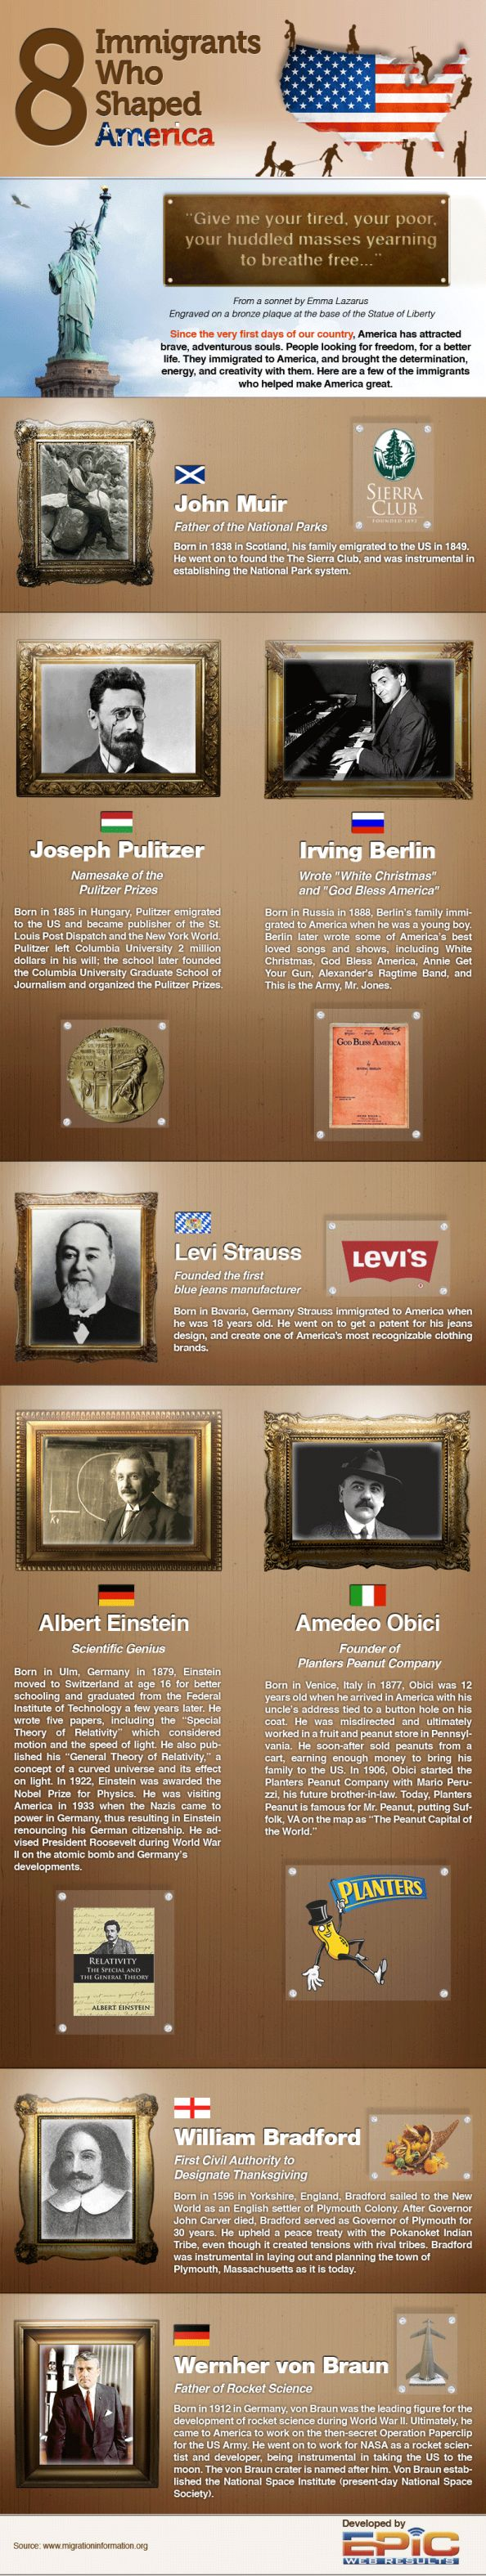 8 Immigrants Who Shaped America Infographic